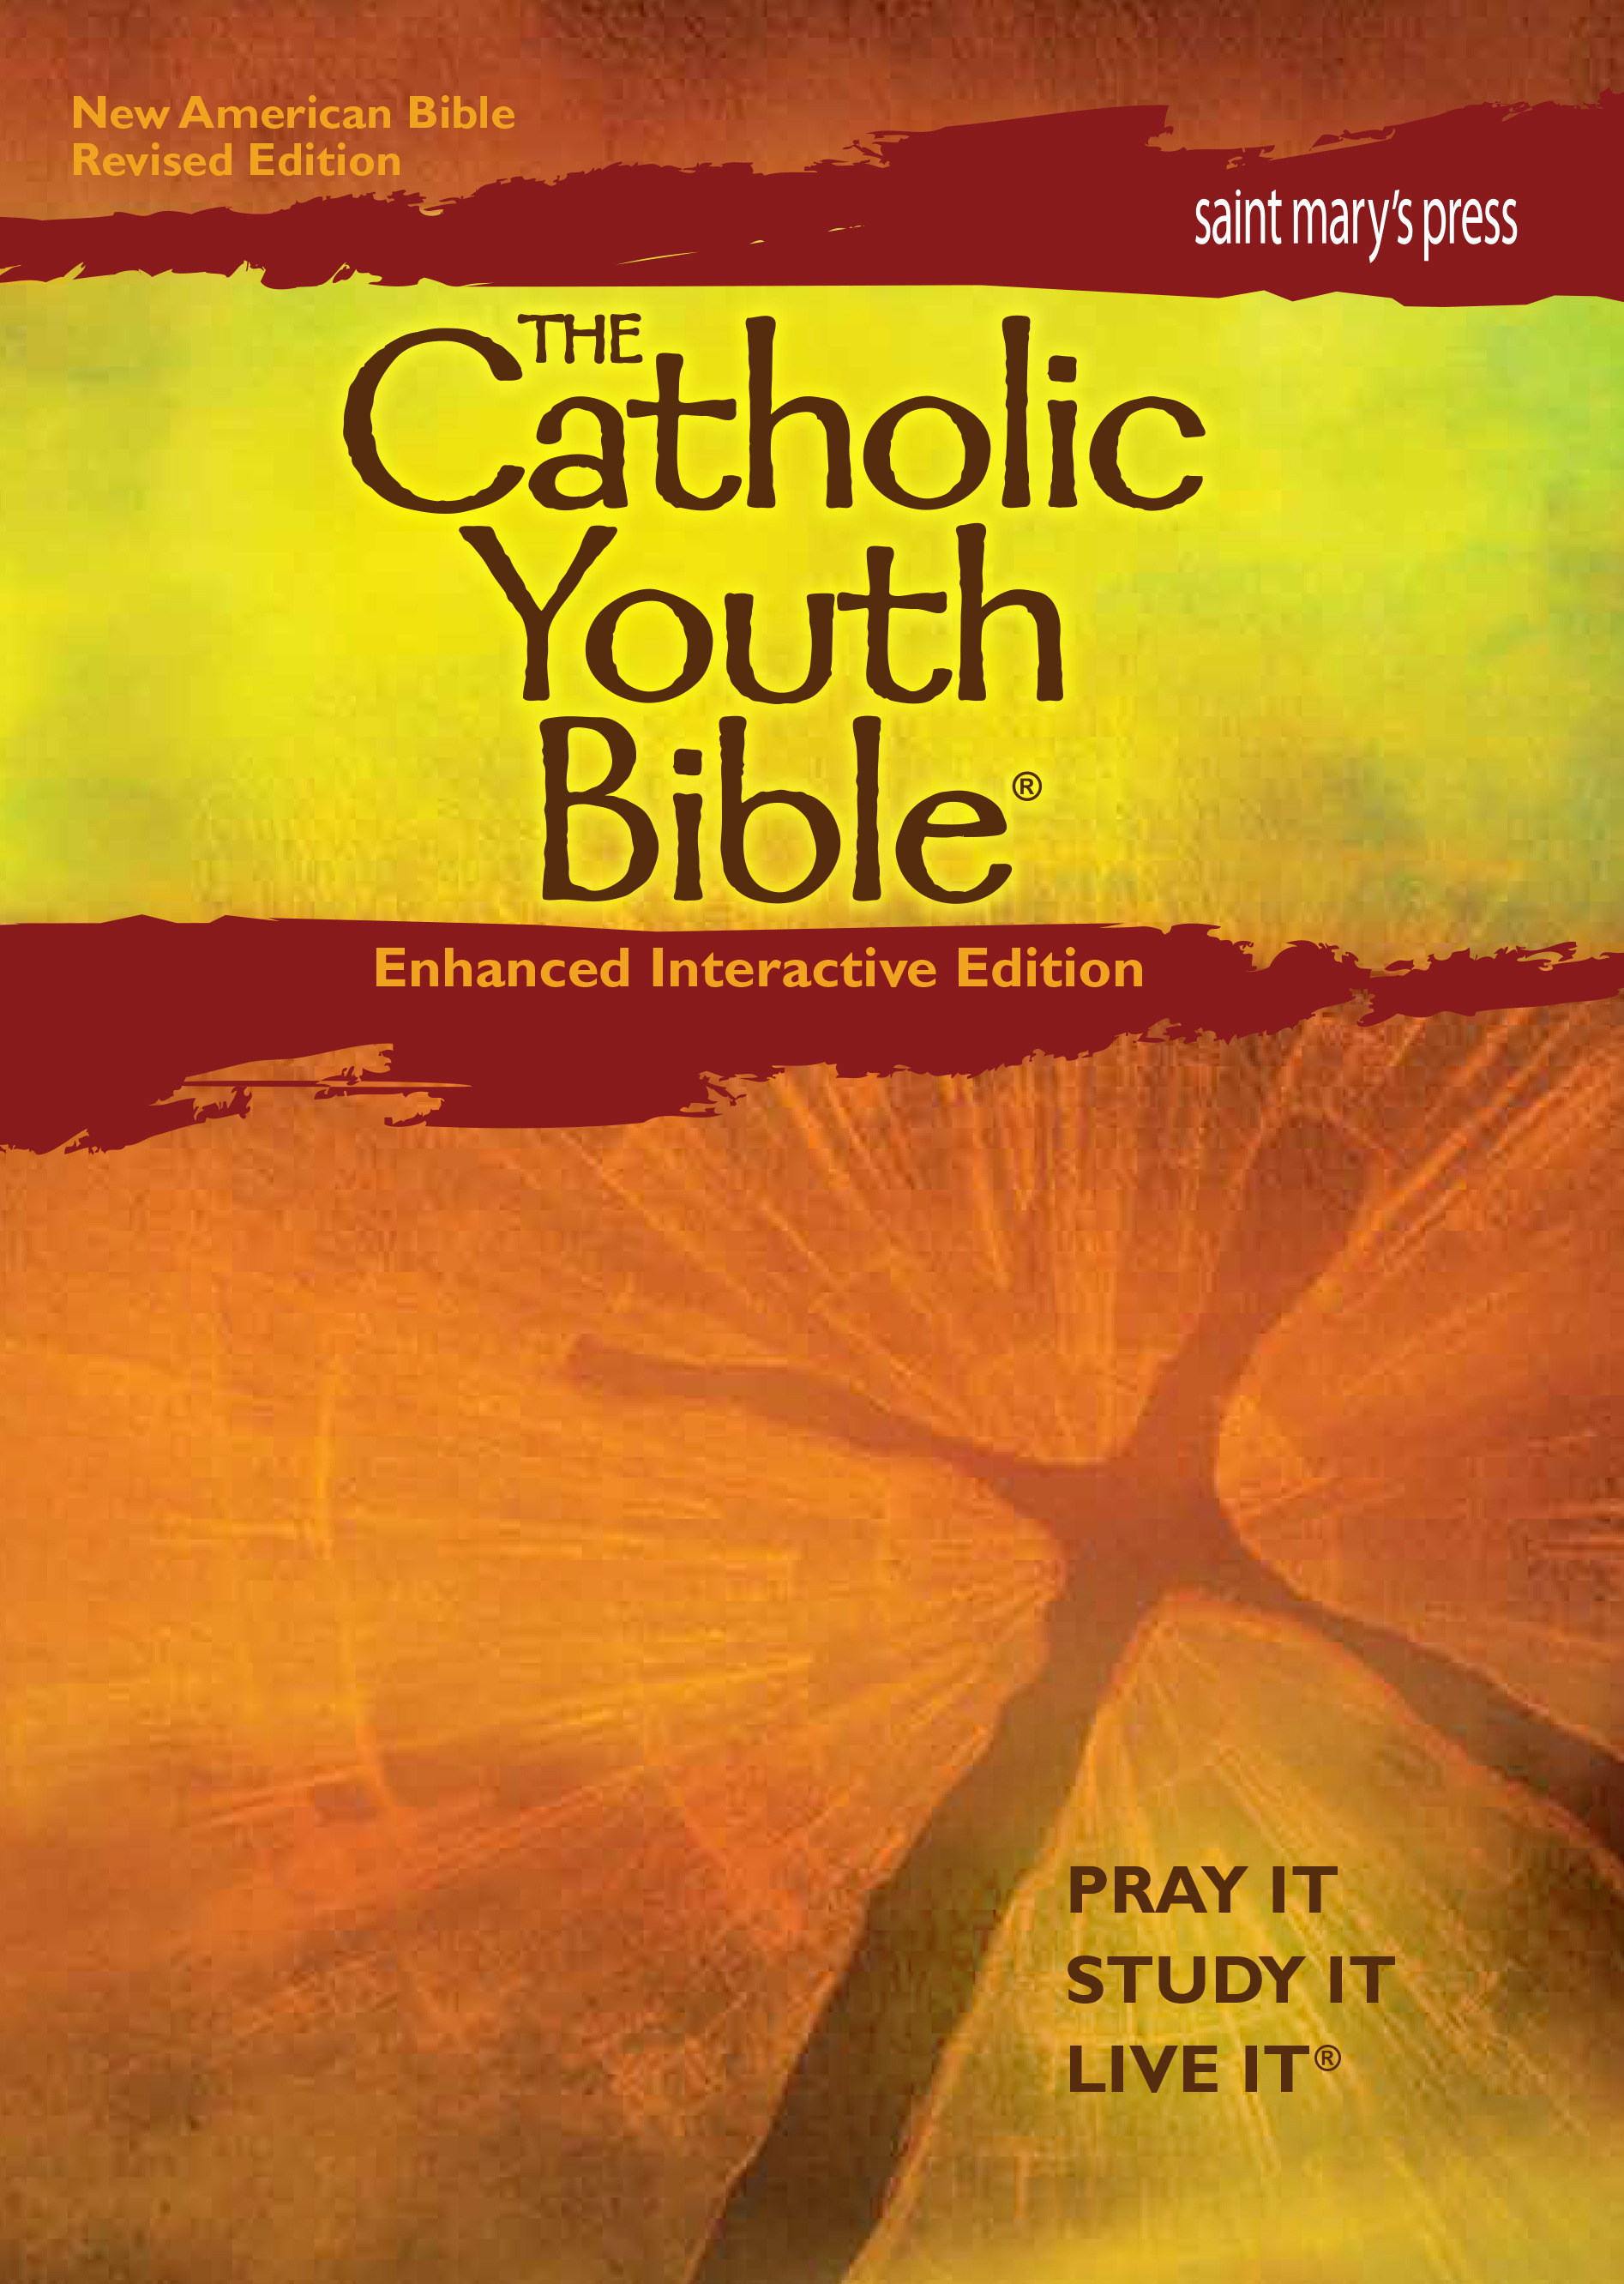 The Catholic Youth Bible®, Enhanced Interactive Edition (NABRE)